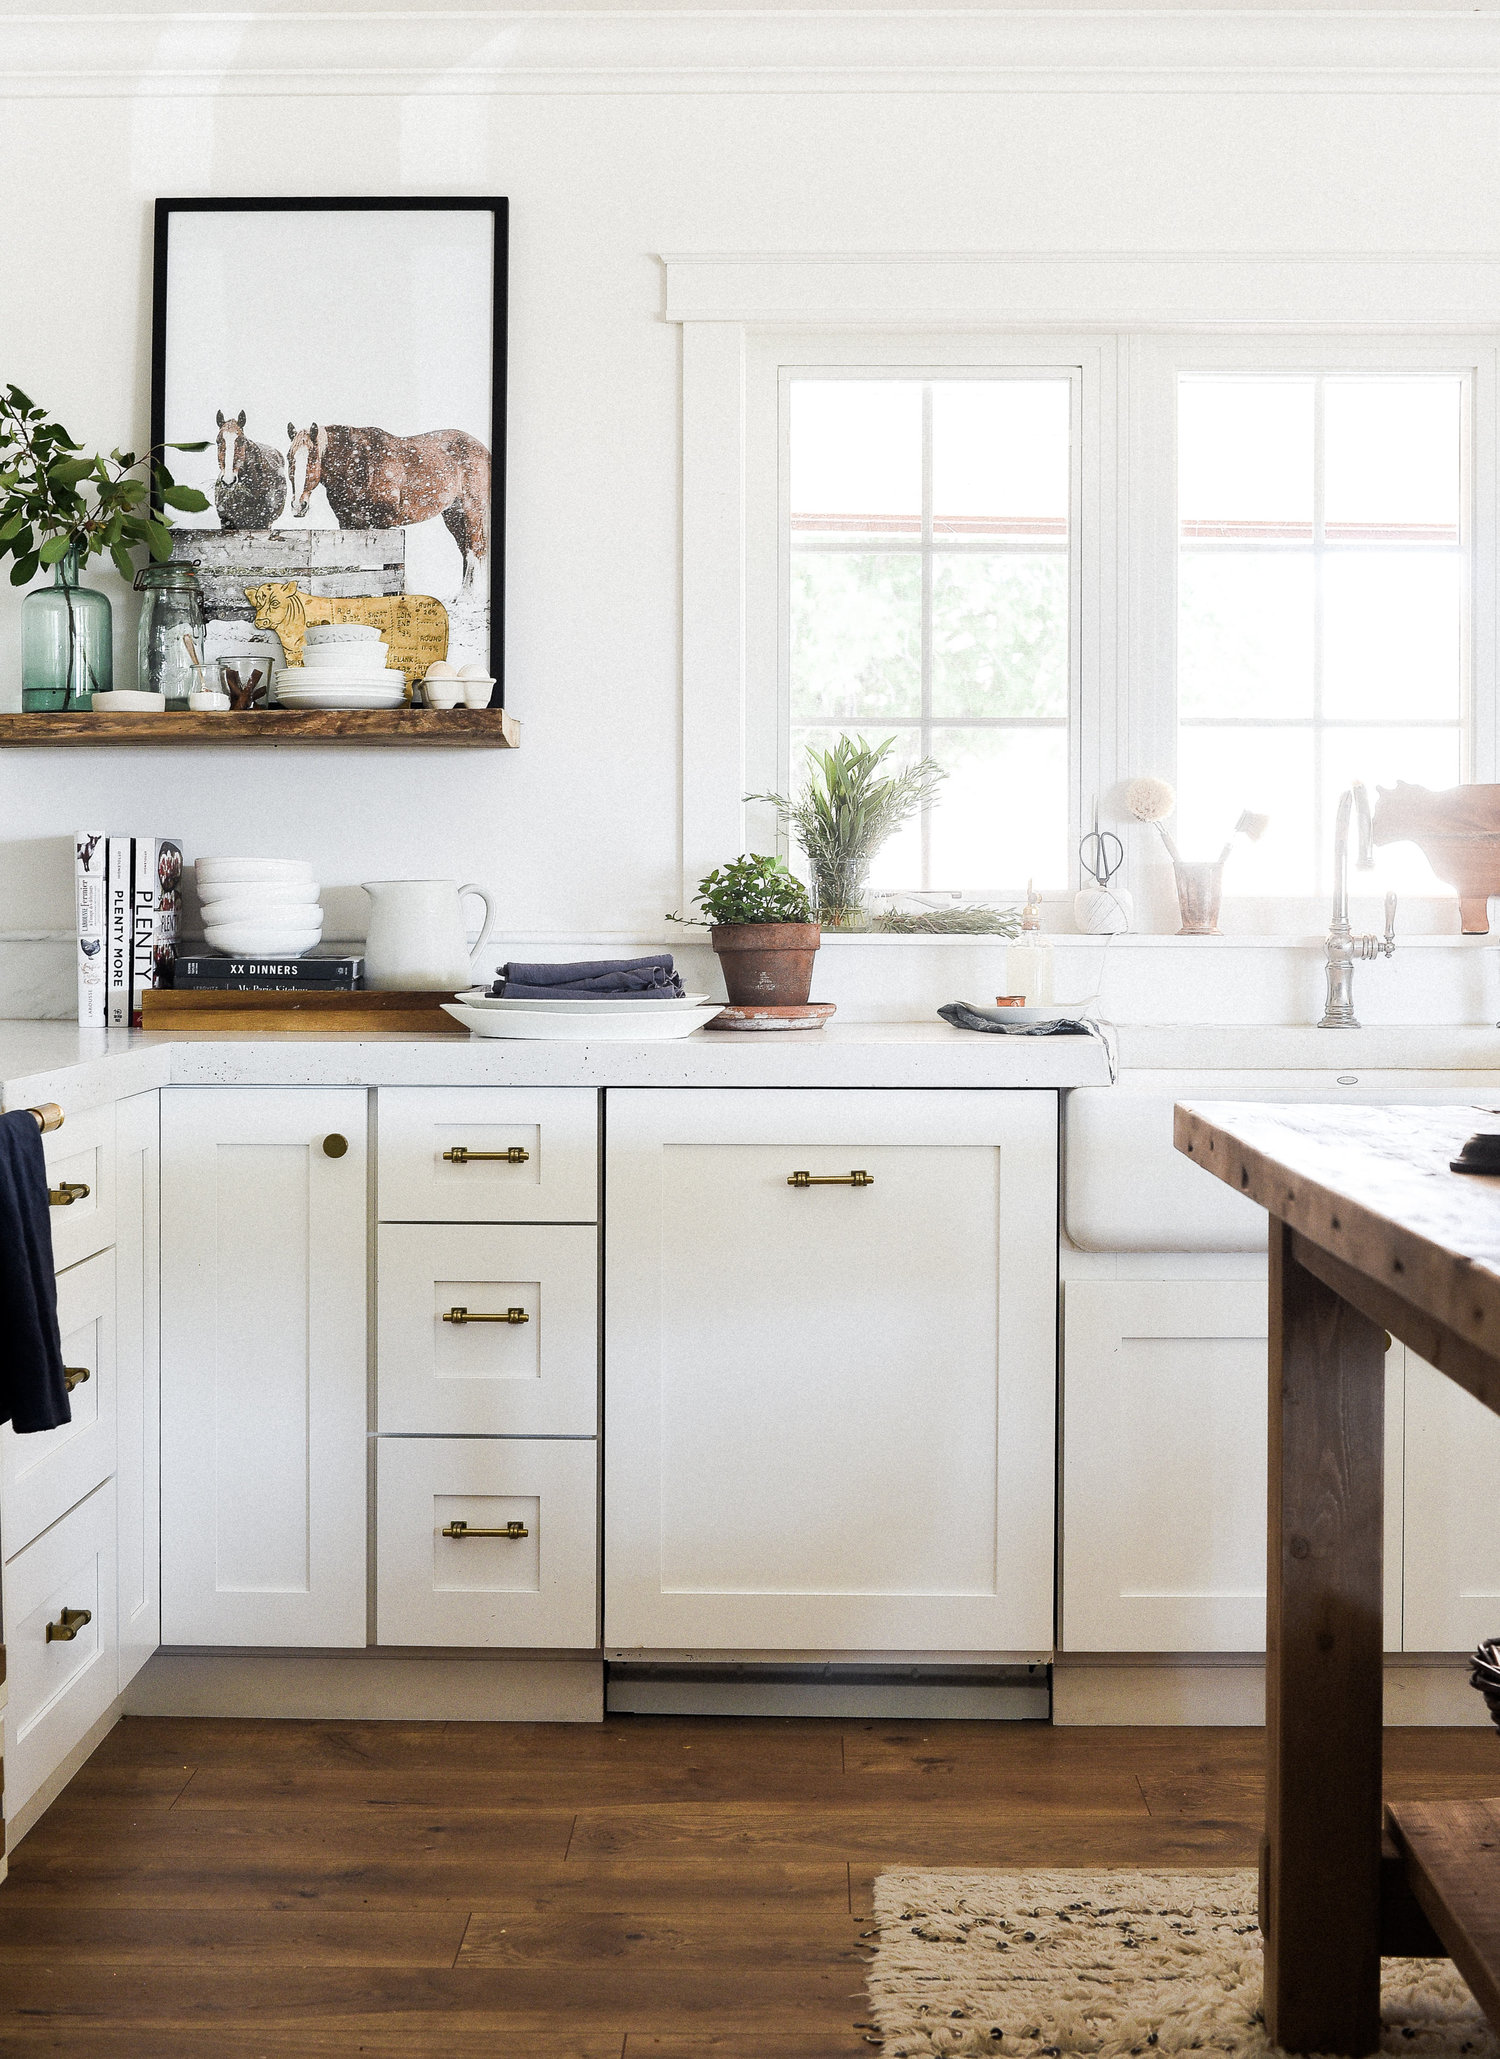 concrete countertop — modern farmhouse decor & style blog